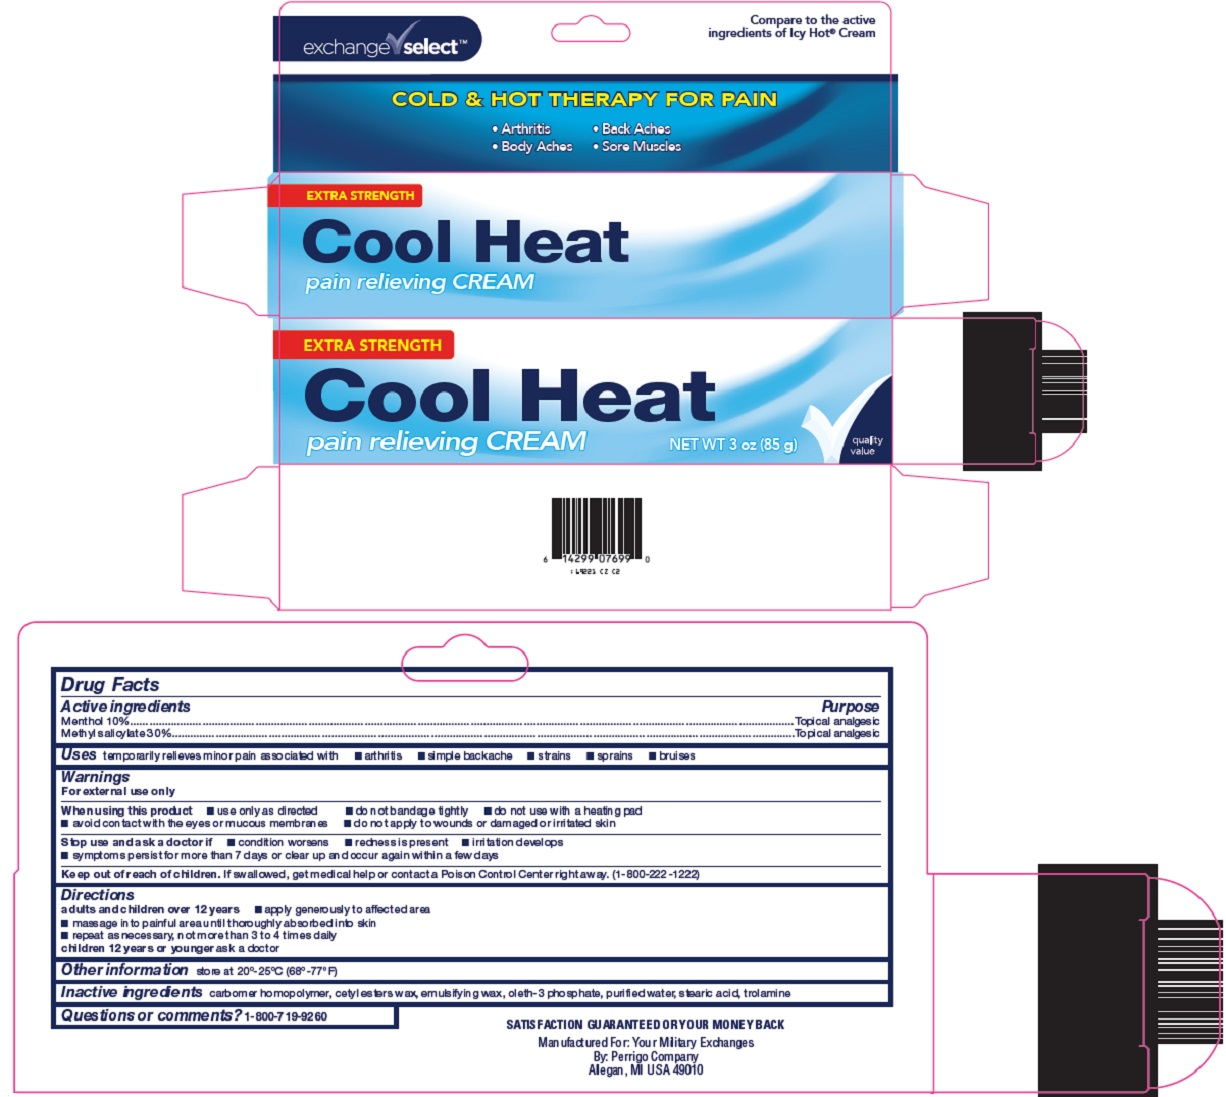 Exchange Select Cool Heat image